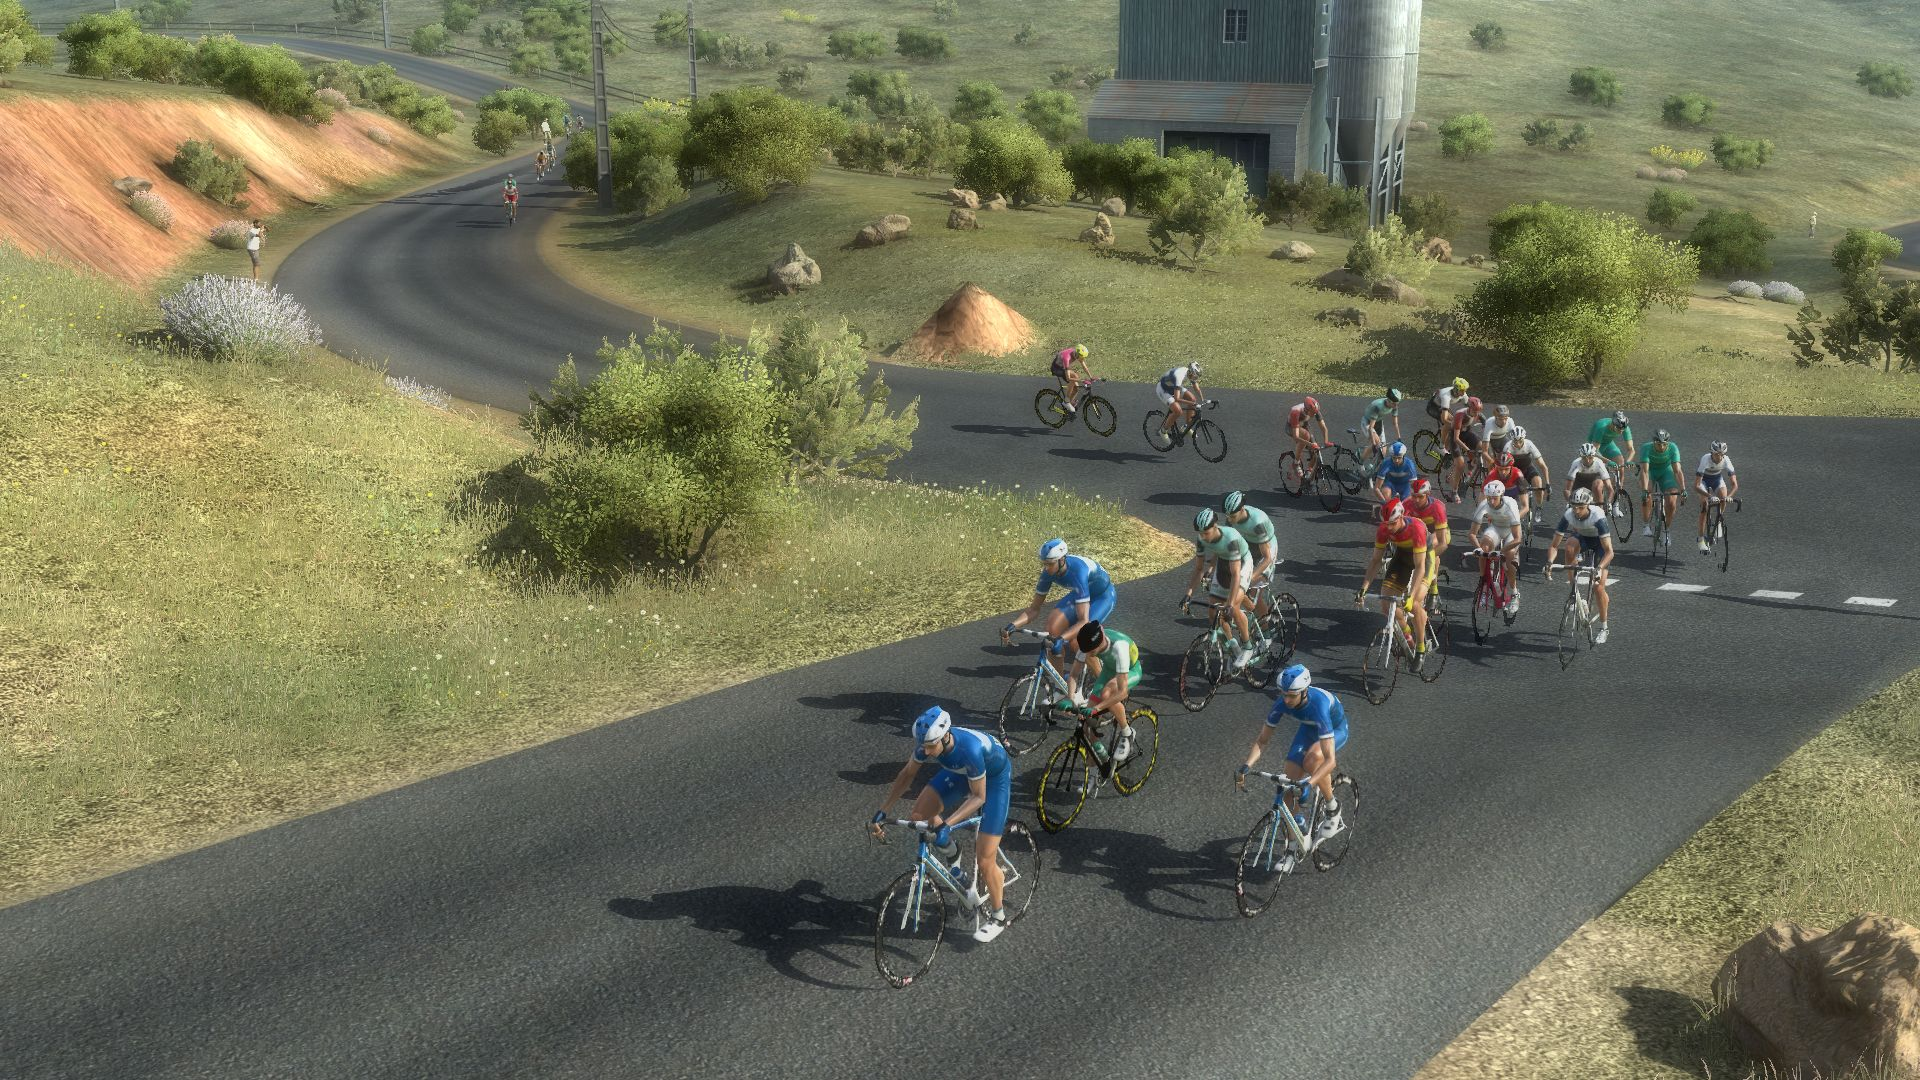 pcmdaily.com/images/mg/2019/Races/C2HC/Eritrea/TOES6%2017.jpg